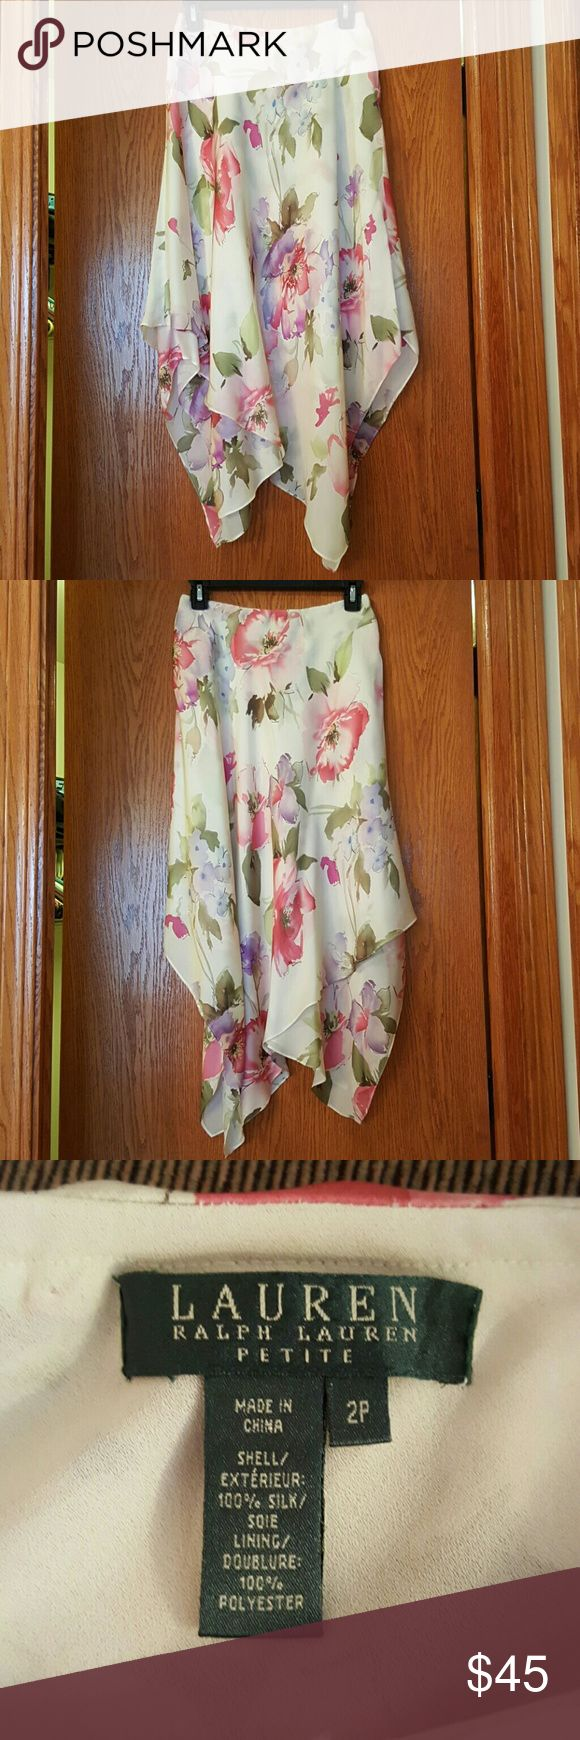 Stunning Watercolor Handkerchief Silk Skirt Ralph Lauren 100% silk long flowing skirt. Beautiful floral water color. Built in slip. Does have a few very small snags that are not noticeable. Has always been dry cleaned. Also selling top that was usually worn with it... Lauren Ralph Lauren Skirts Asymmetrical